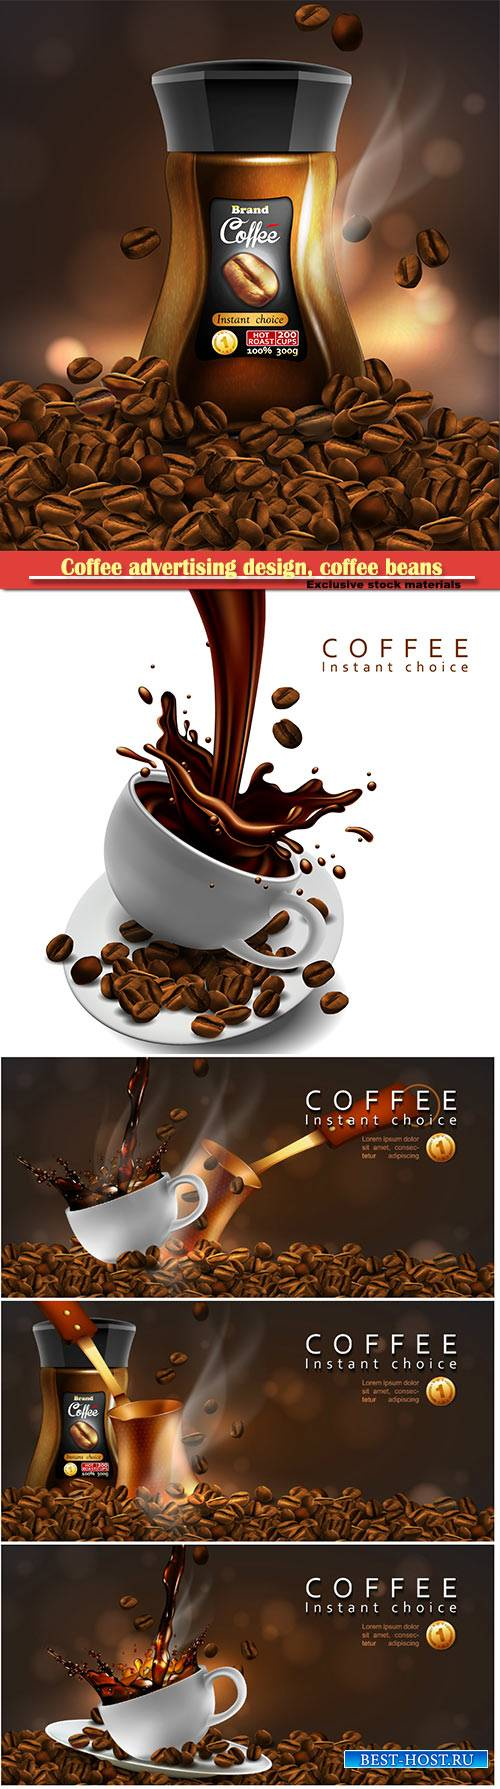 Coffee advertising design, coffee beans, cup of coffee with a splash effect ...